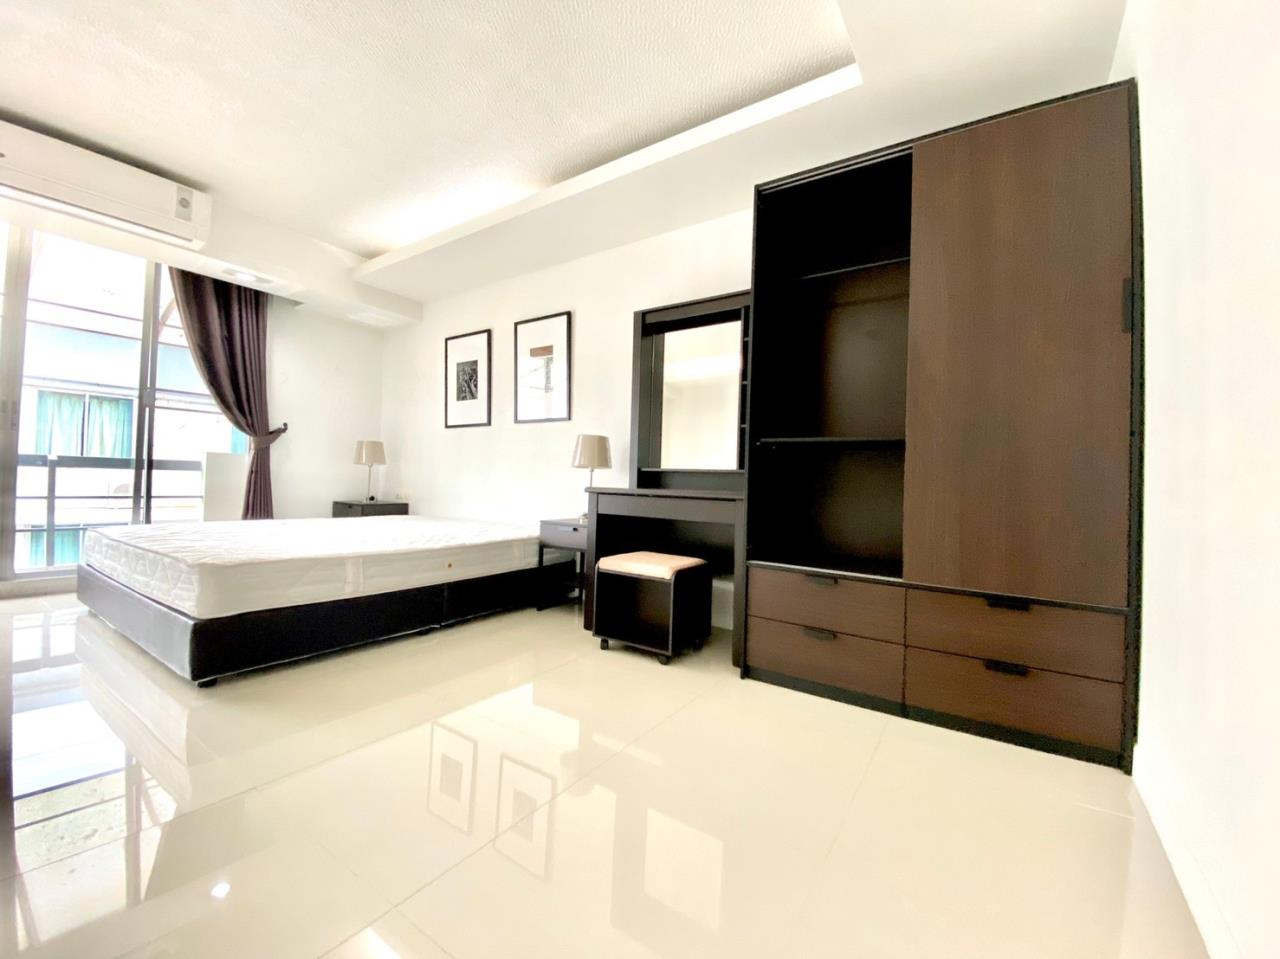 Bestbkkcondos Agency's Waterford 50 2 bedrooms 2 bathrooms 96.8 sqm. 8th Floor for sale 6.582mTHB Rental 28000THB 10